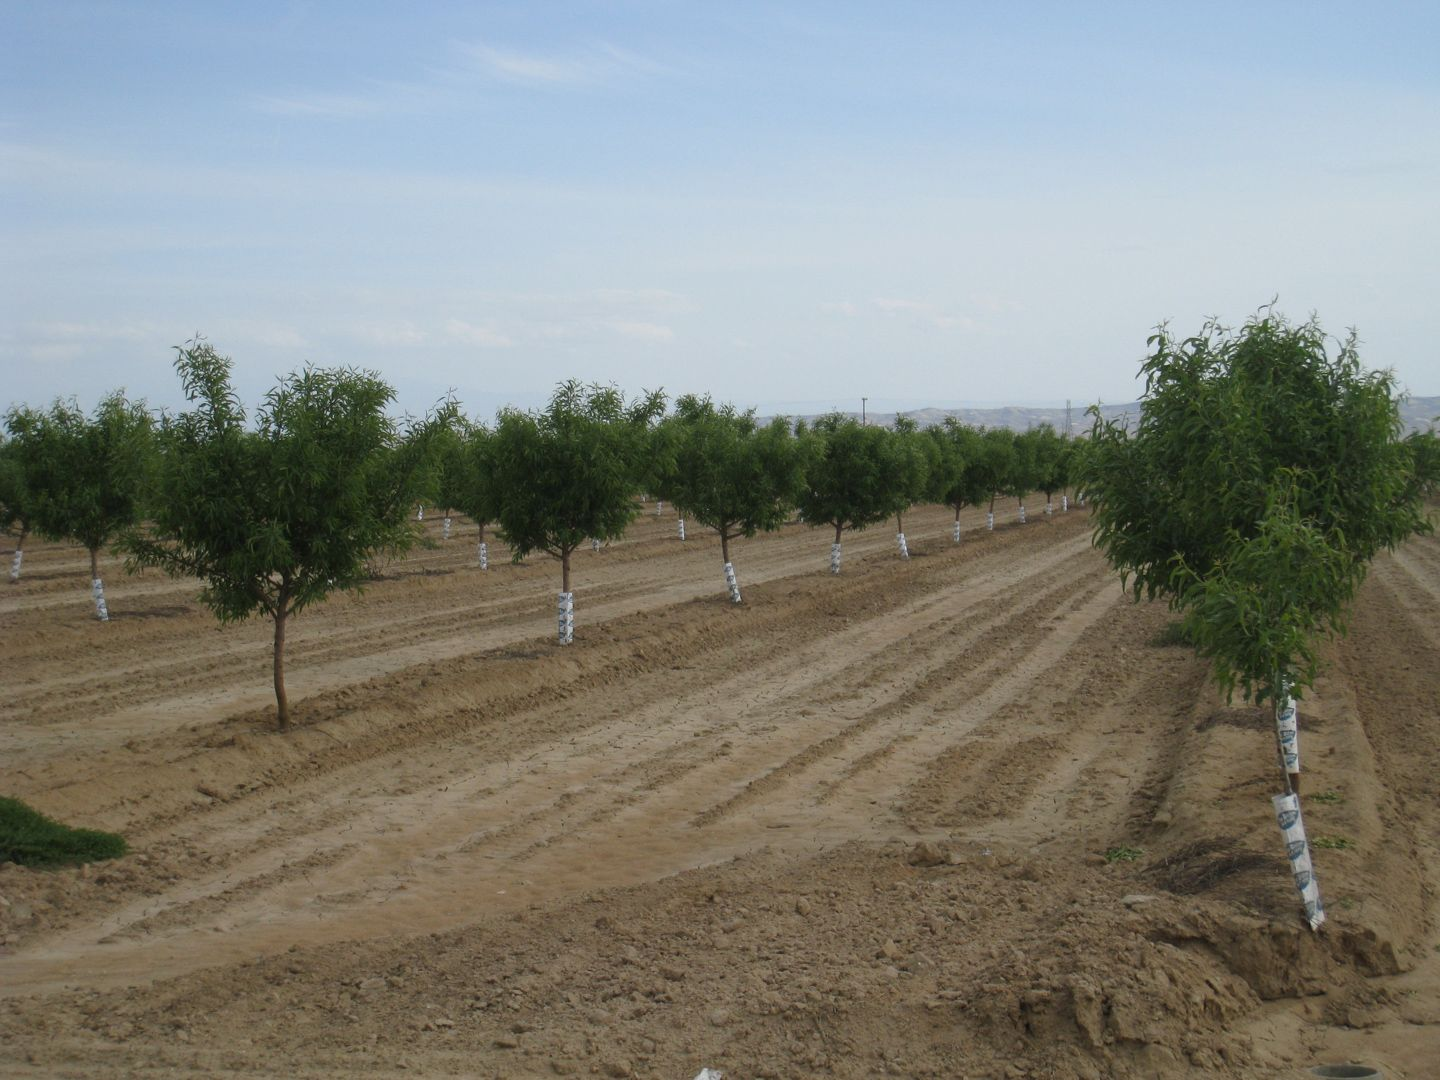 agroforestry carbon sequestration california central valley orchard close